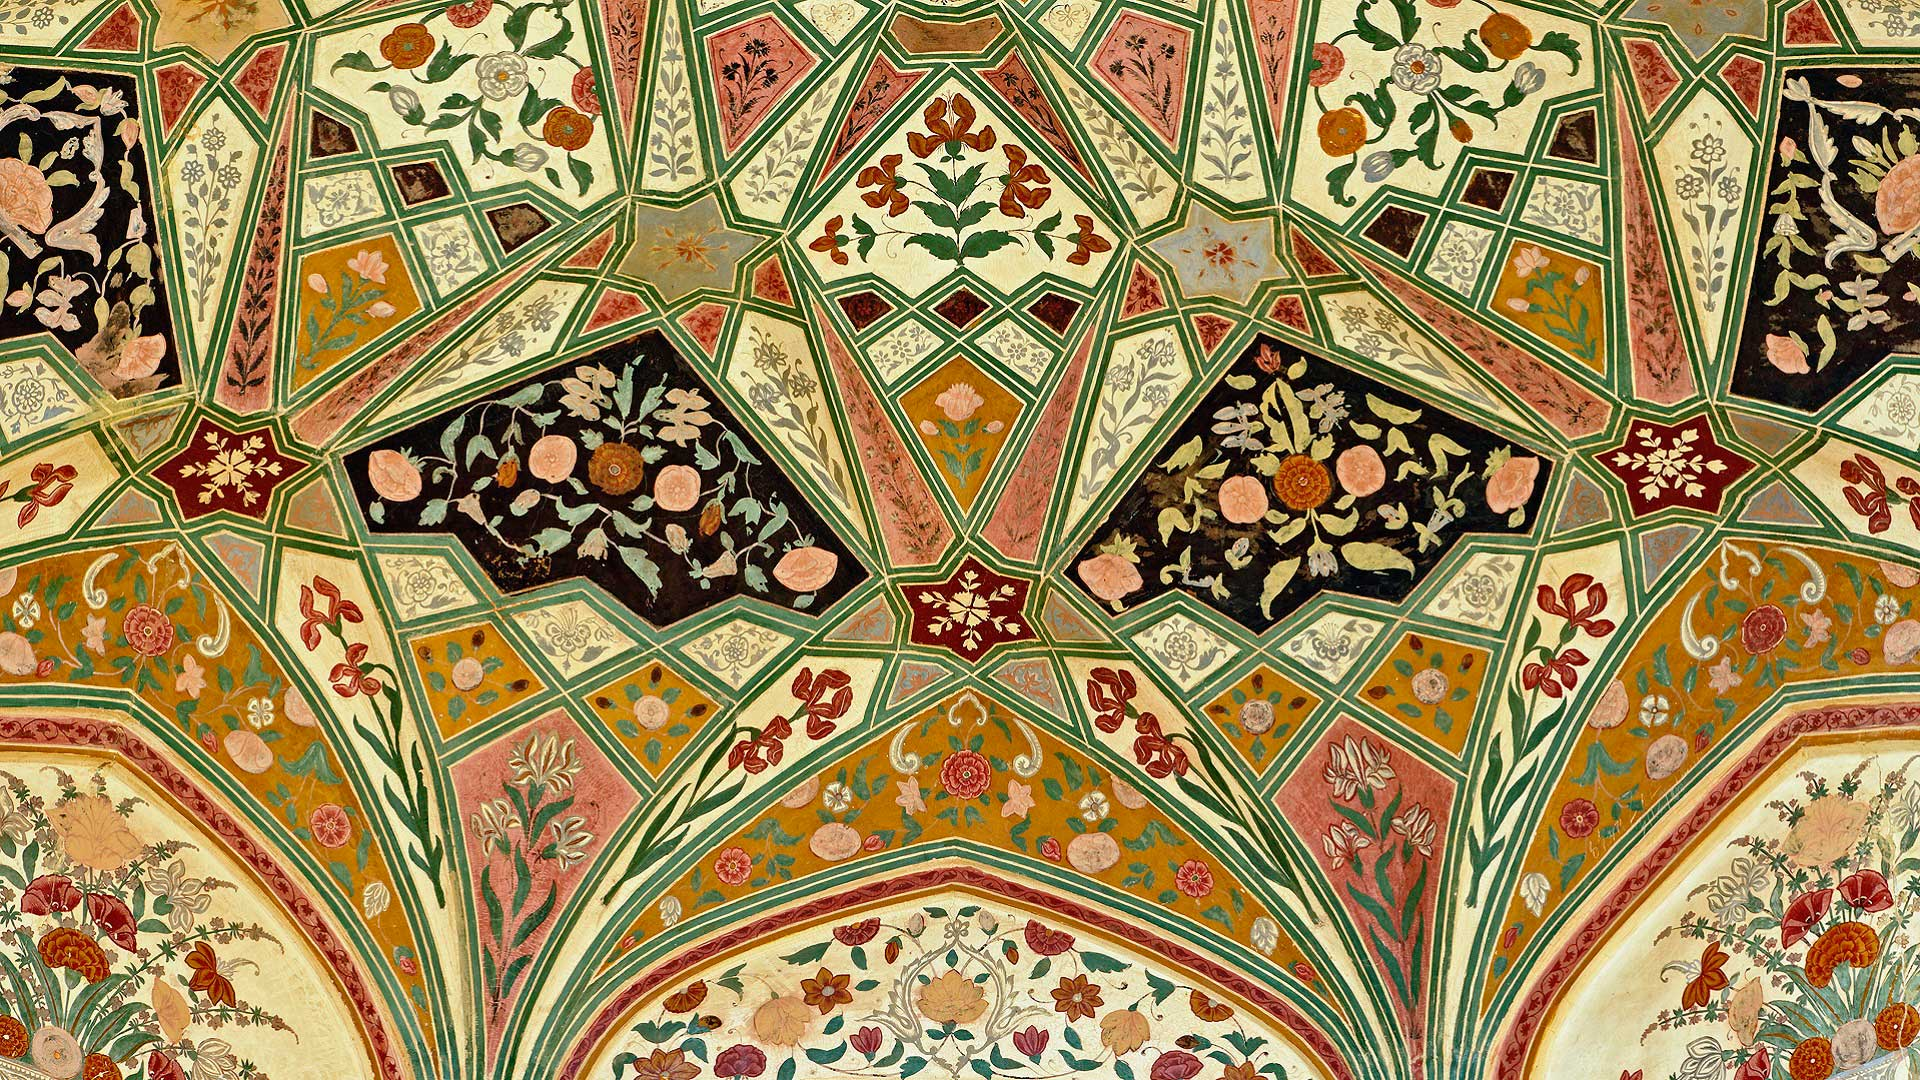 Ceiling details at Amer (Amber) Fort in Jaipur, India with GeoEx